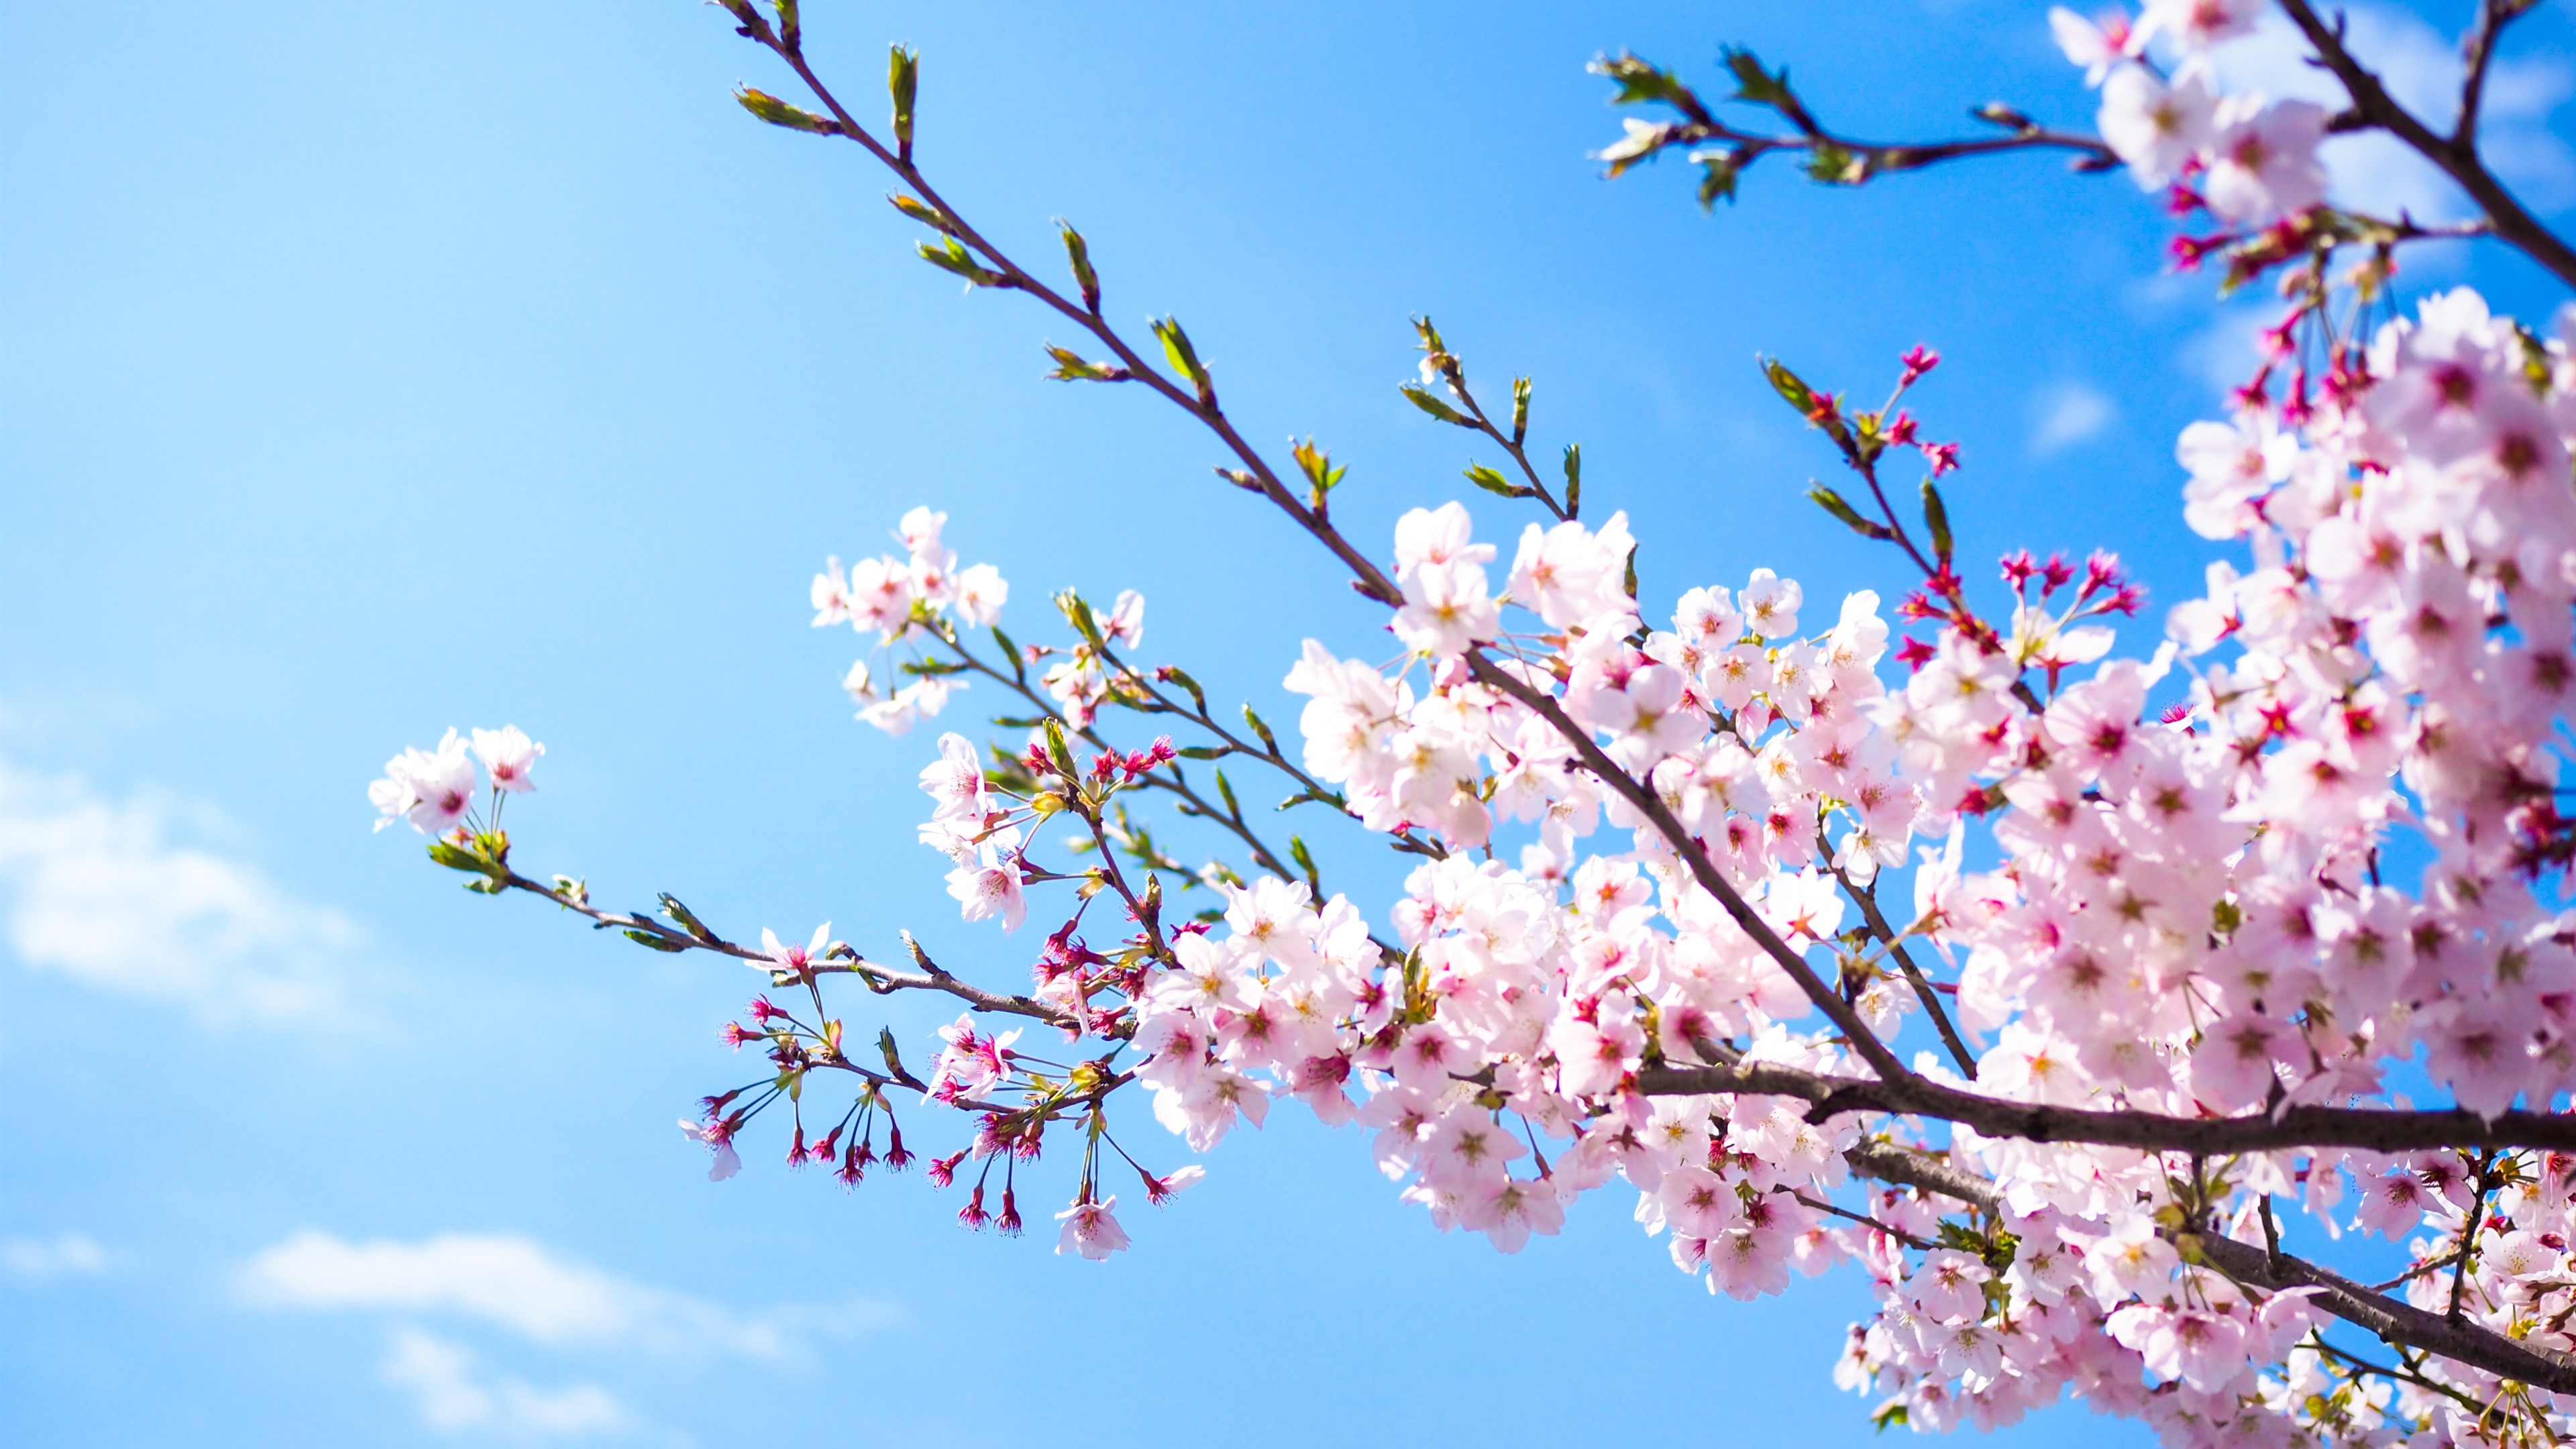 Wallpaper Pink Sakura Bloom Blue Sky Spring 3840x2160 Uhd 4k Picture Image